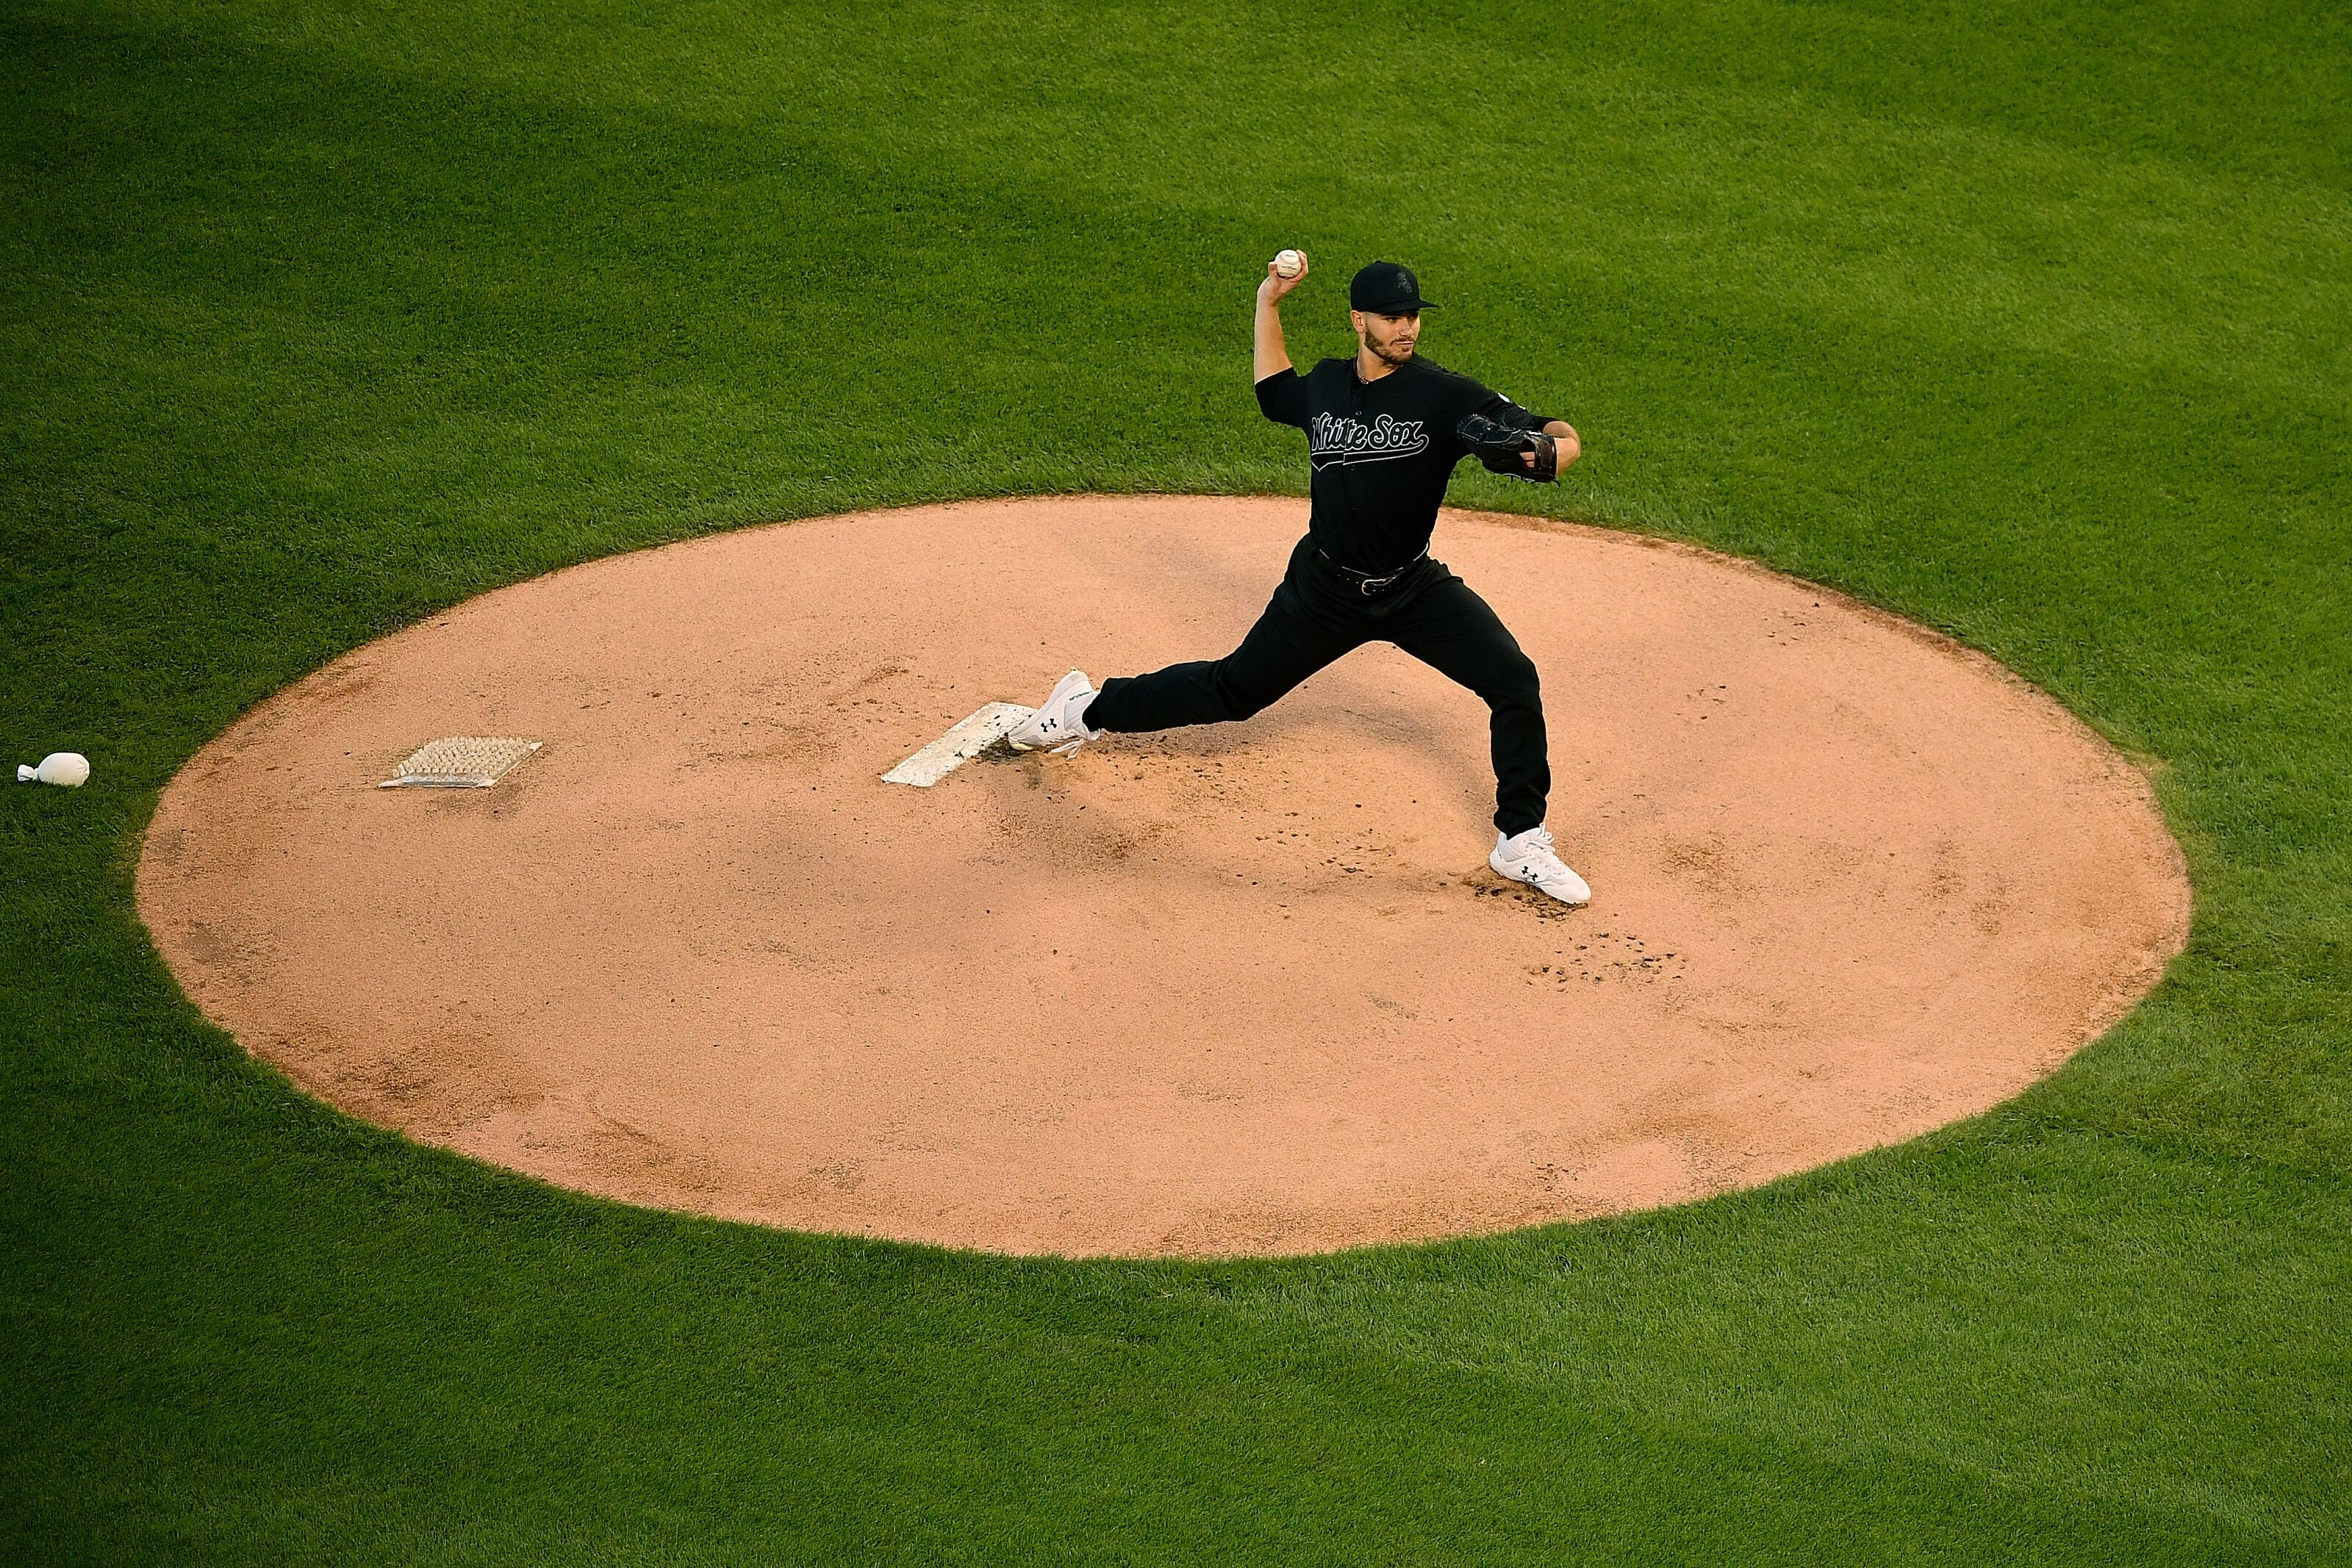 Chicago White Sox: Dylan Cease doesn't let one bad inning shake him